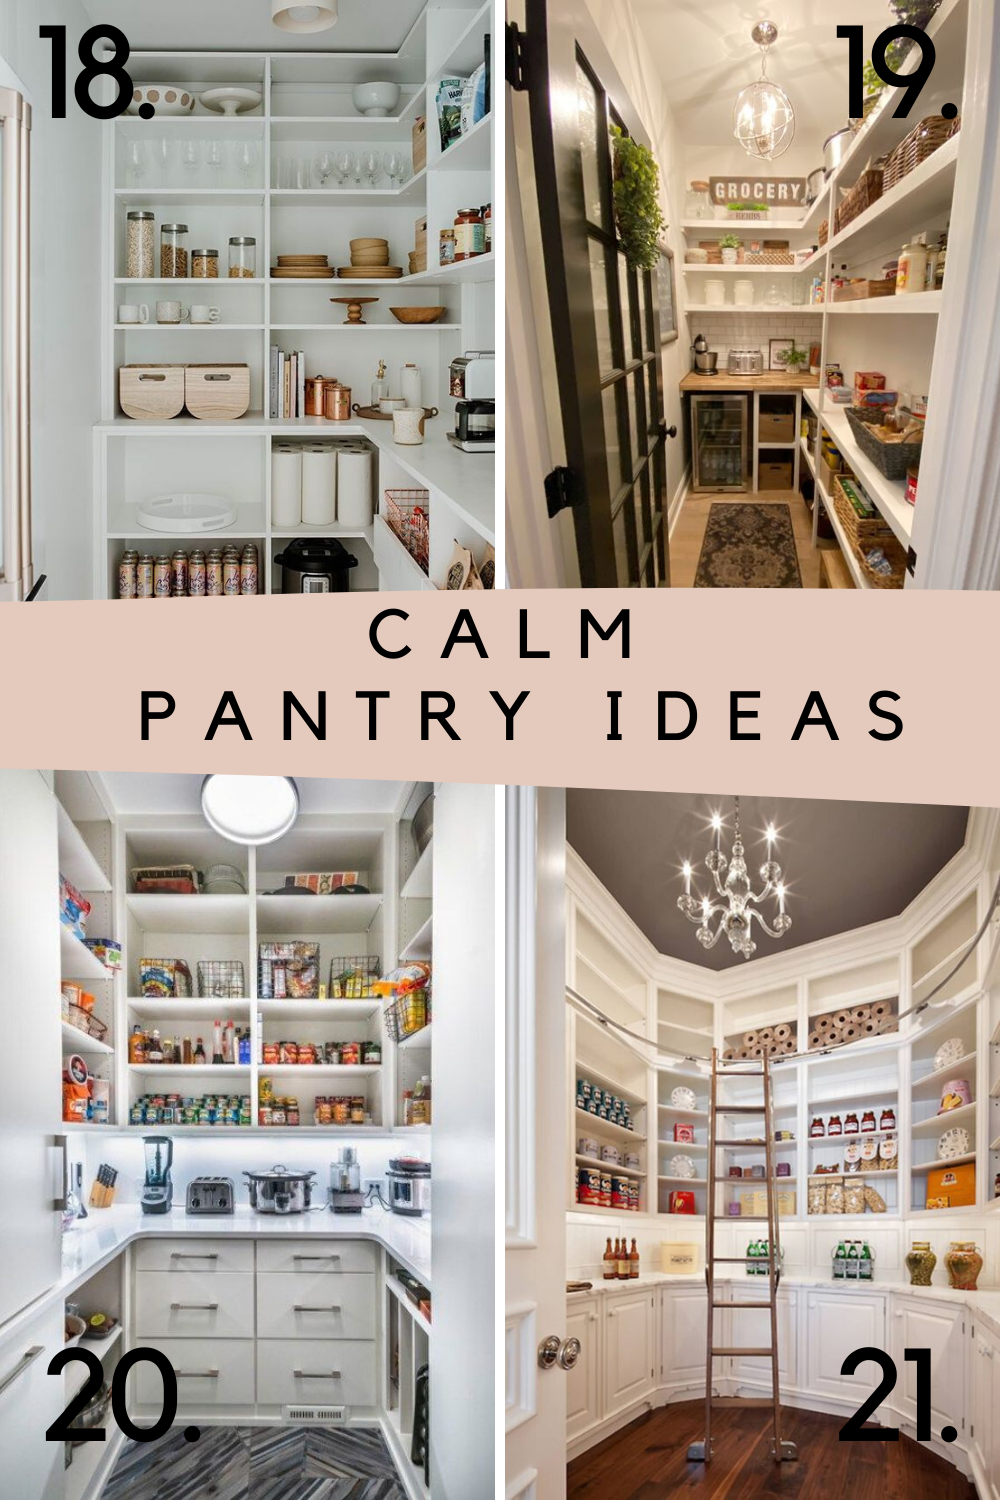 Peaceful pantry ideas